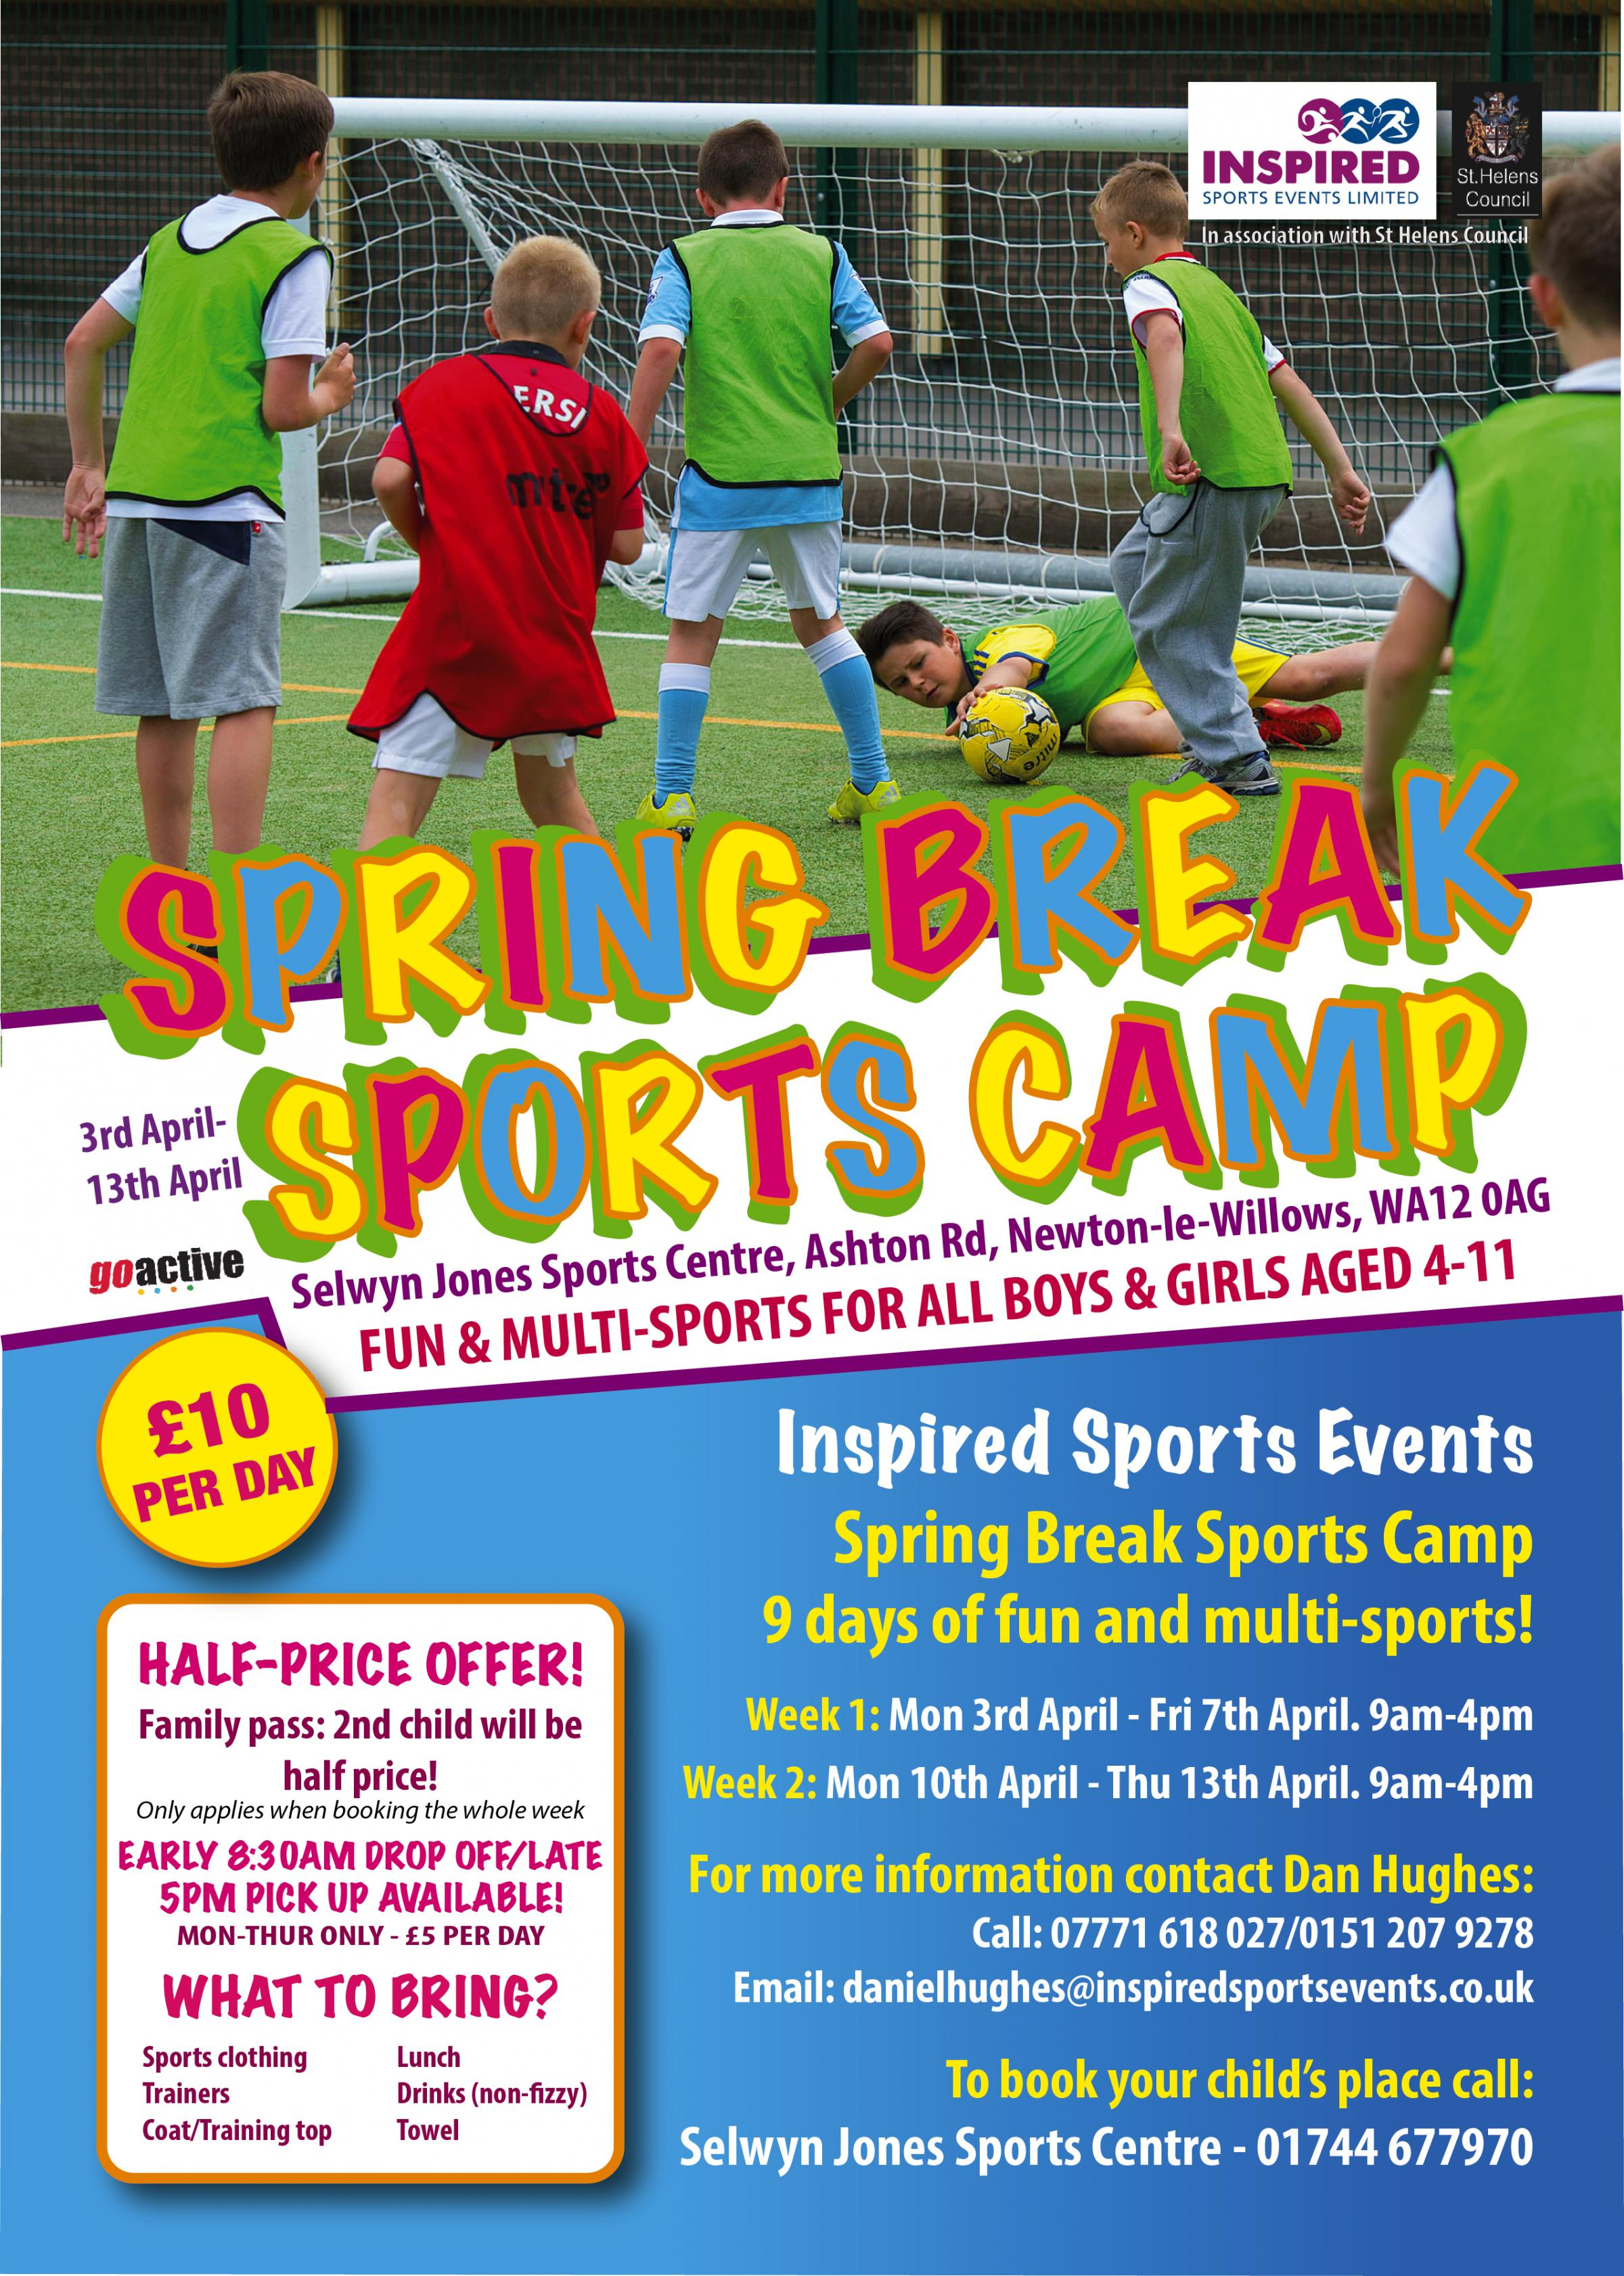 Inspired Sports Events' Spring Break Sports Camp!